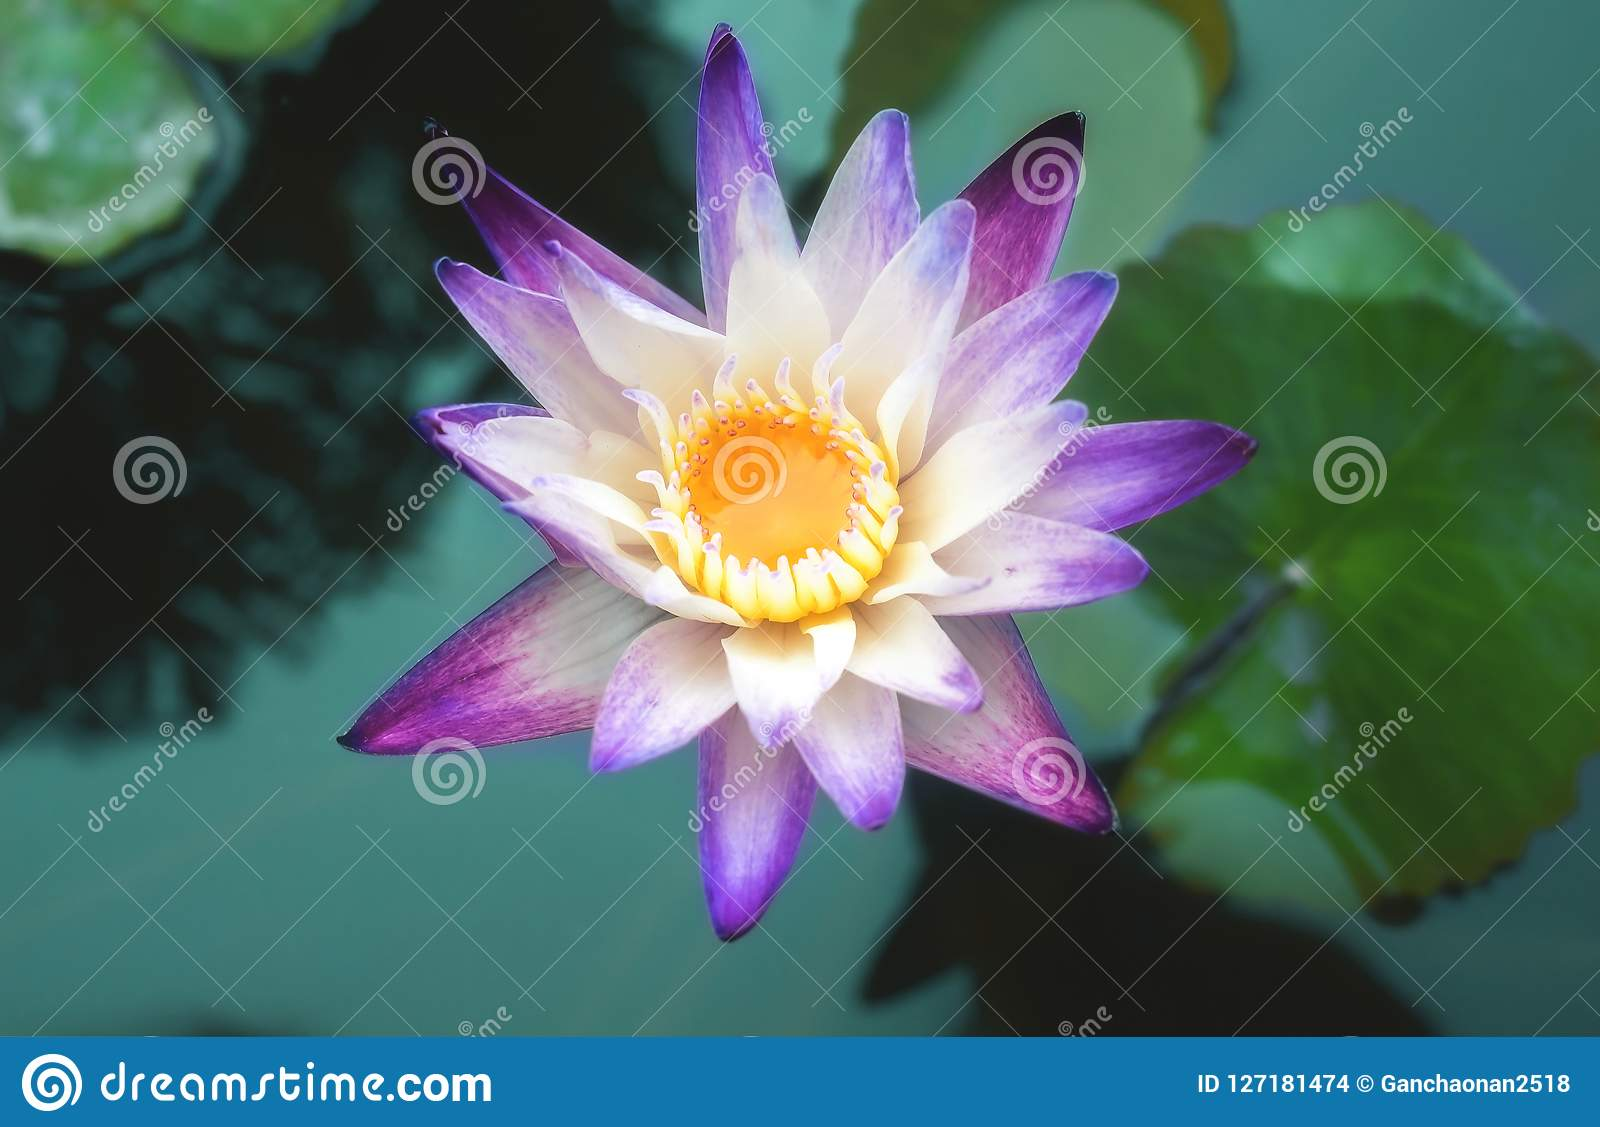 This beautiful waterlily or lotus flower is complimented by the rich this beautiful waterlily or lotus flower is complimented by the rich colors of the deep blue izmirmasajfo